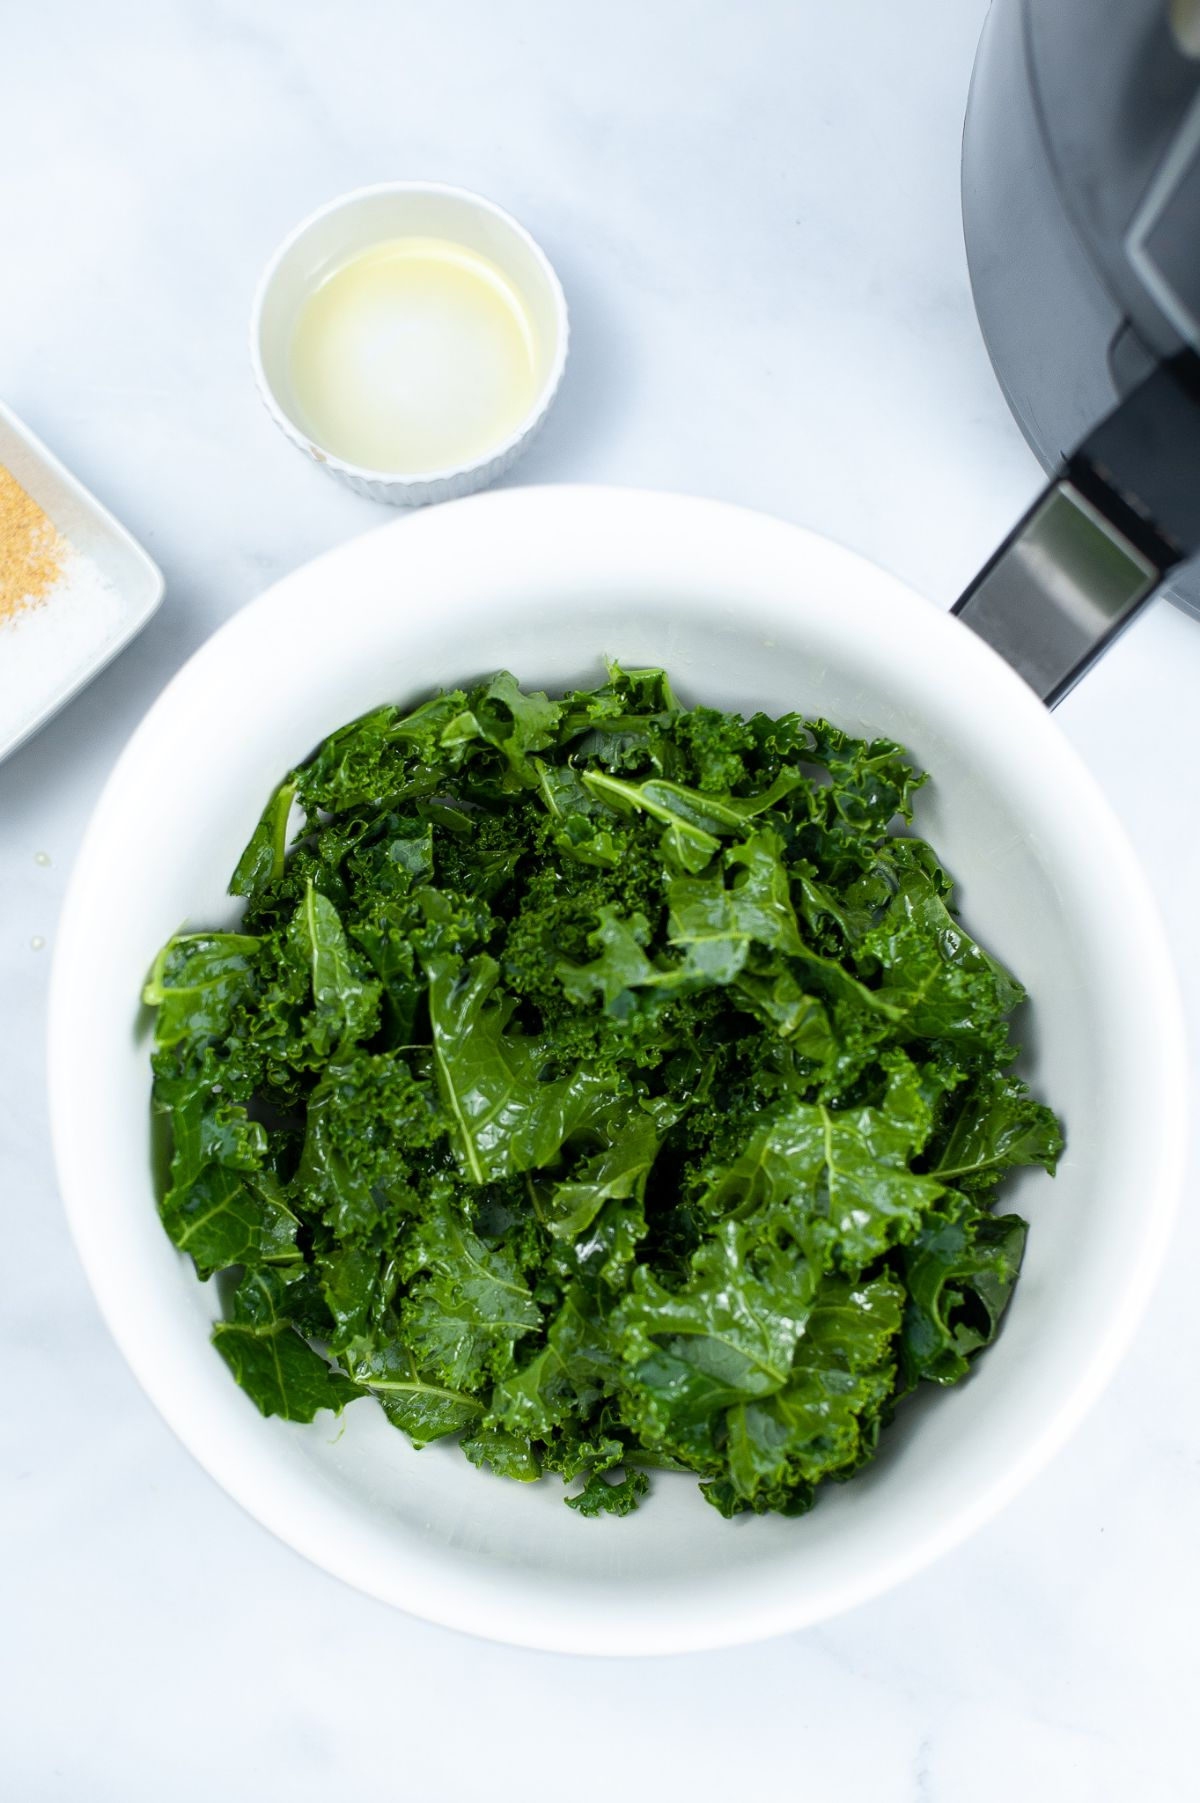 Kale leaves broken into smaller chip size pieces in a white bowl.